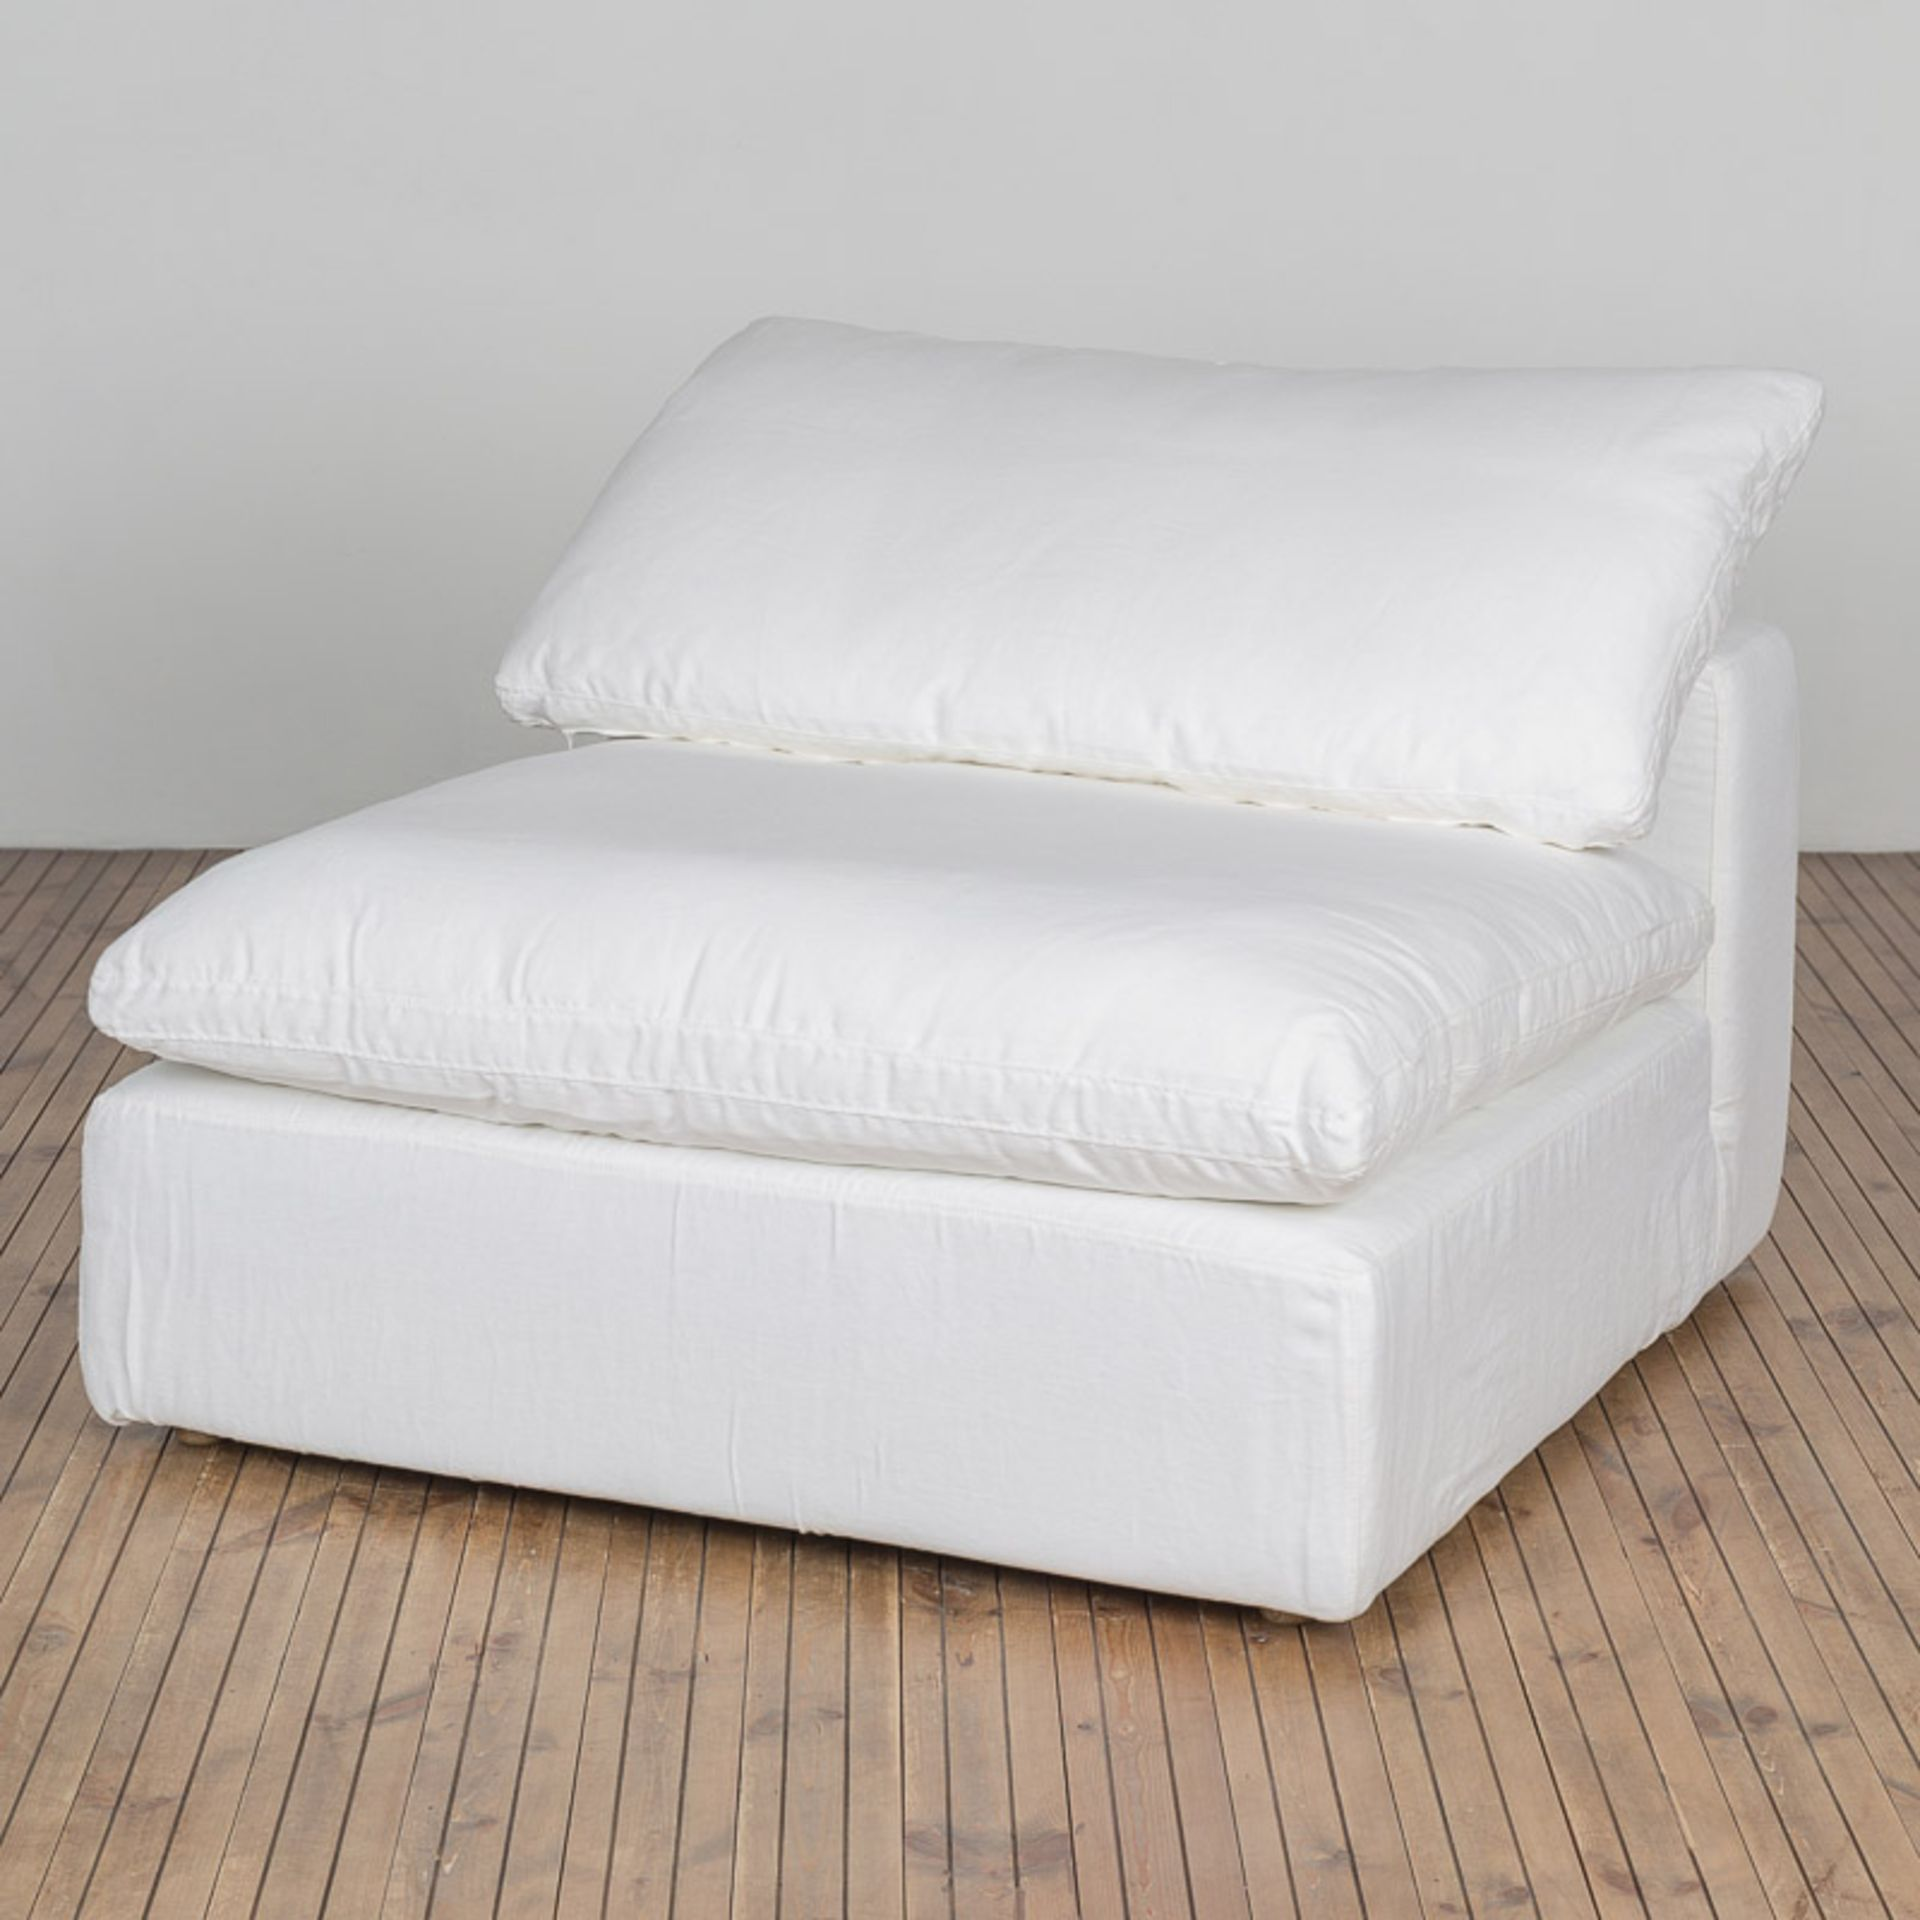 Lot 76 - Luscious 1 Seater Sofa Galata Linen White Made With Luxurious Goose Feathers And Down And